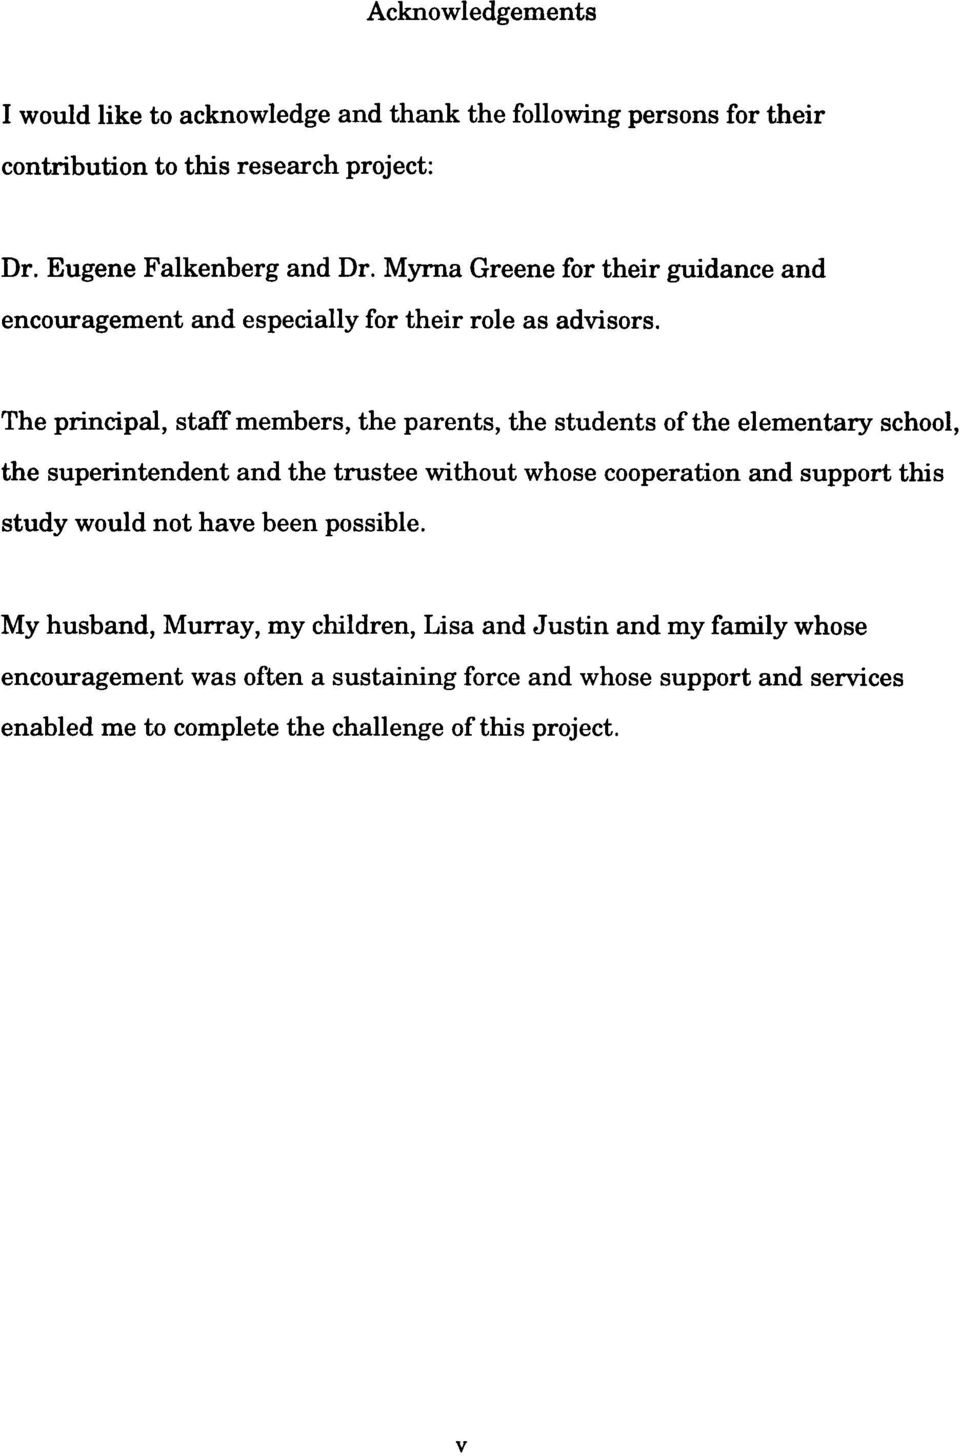 The principal, staff members, the parents, the students of the elementary school, the superintendent and the trustee without whose cooperation and support this